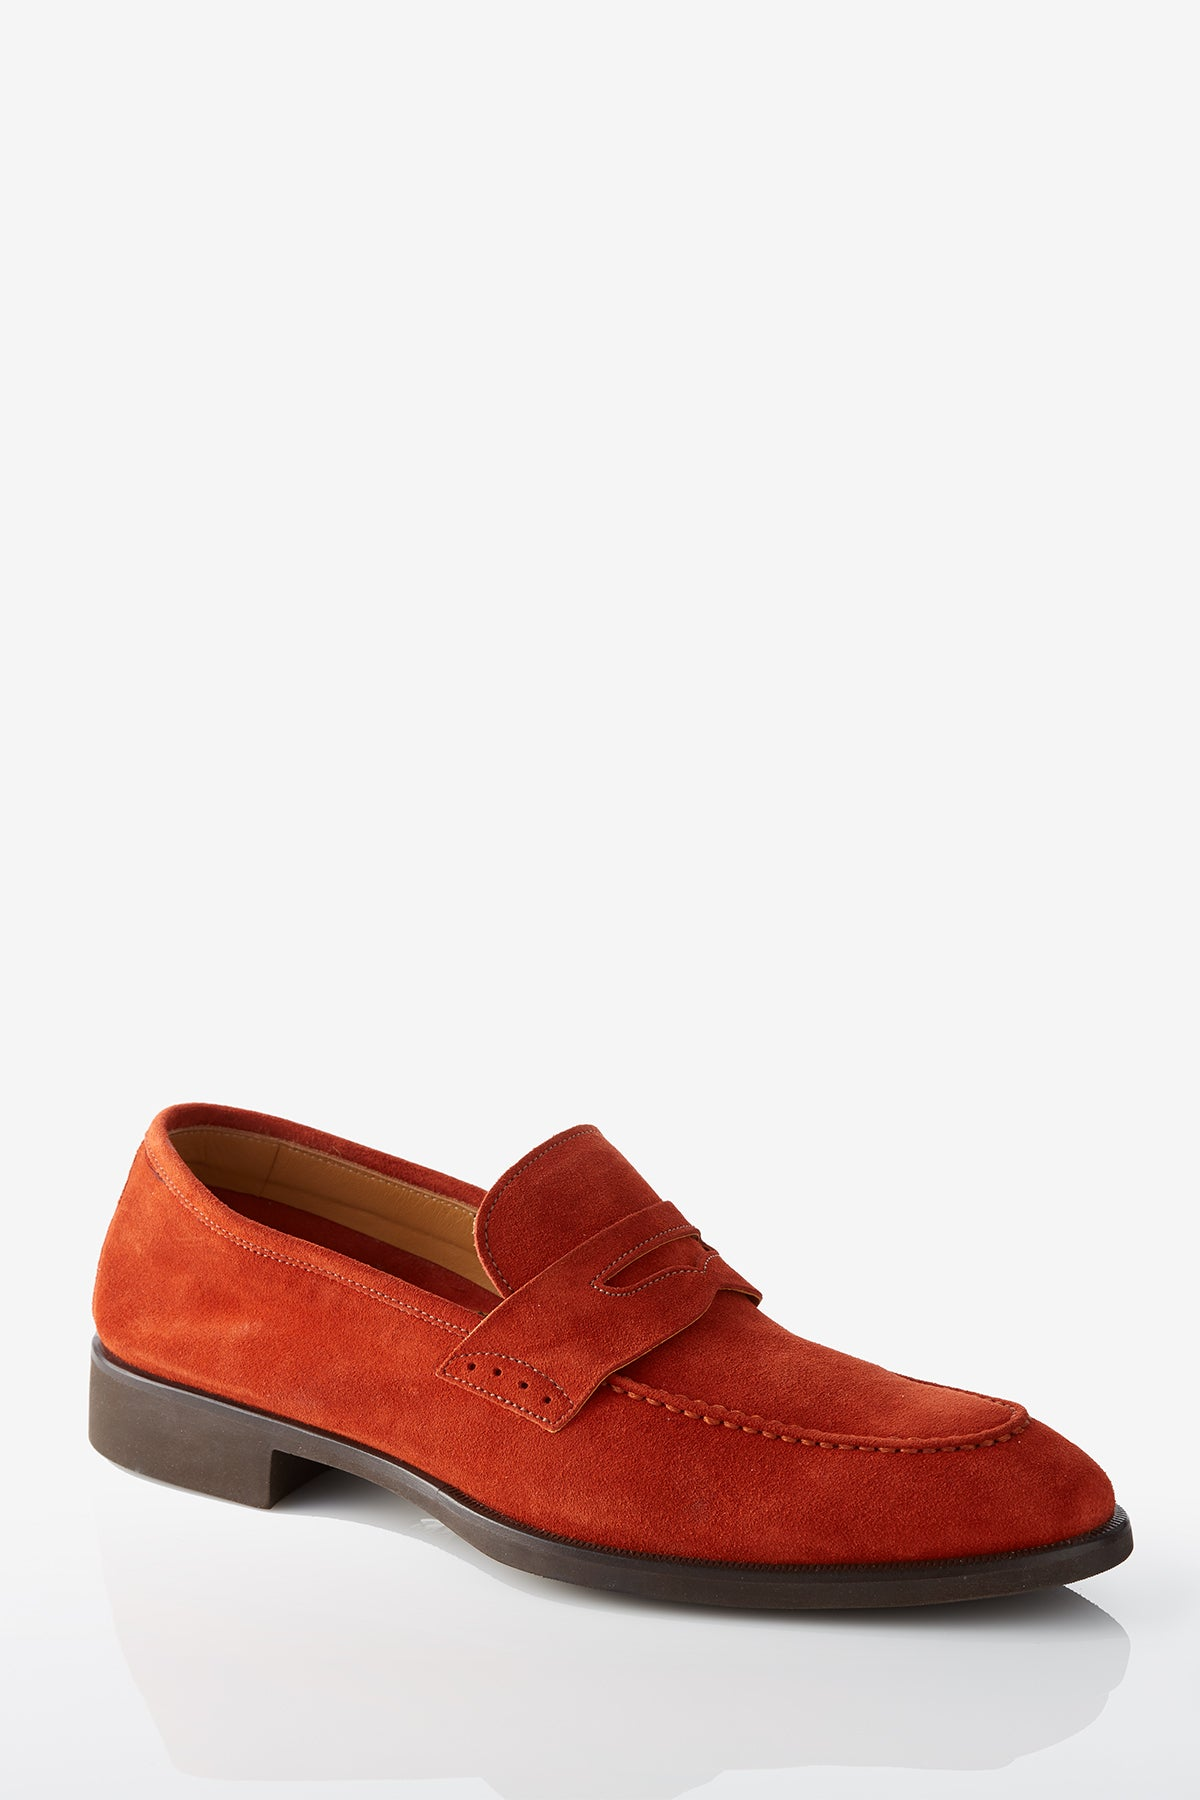 David August Suede Penny Loafer in